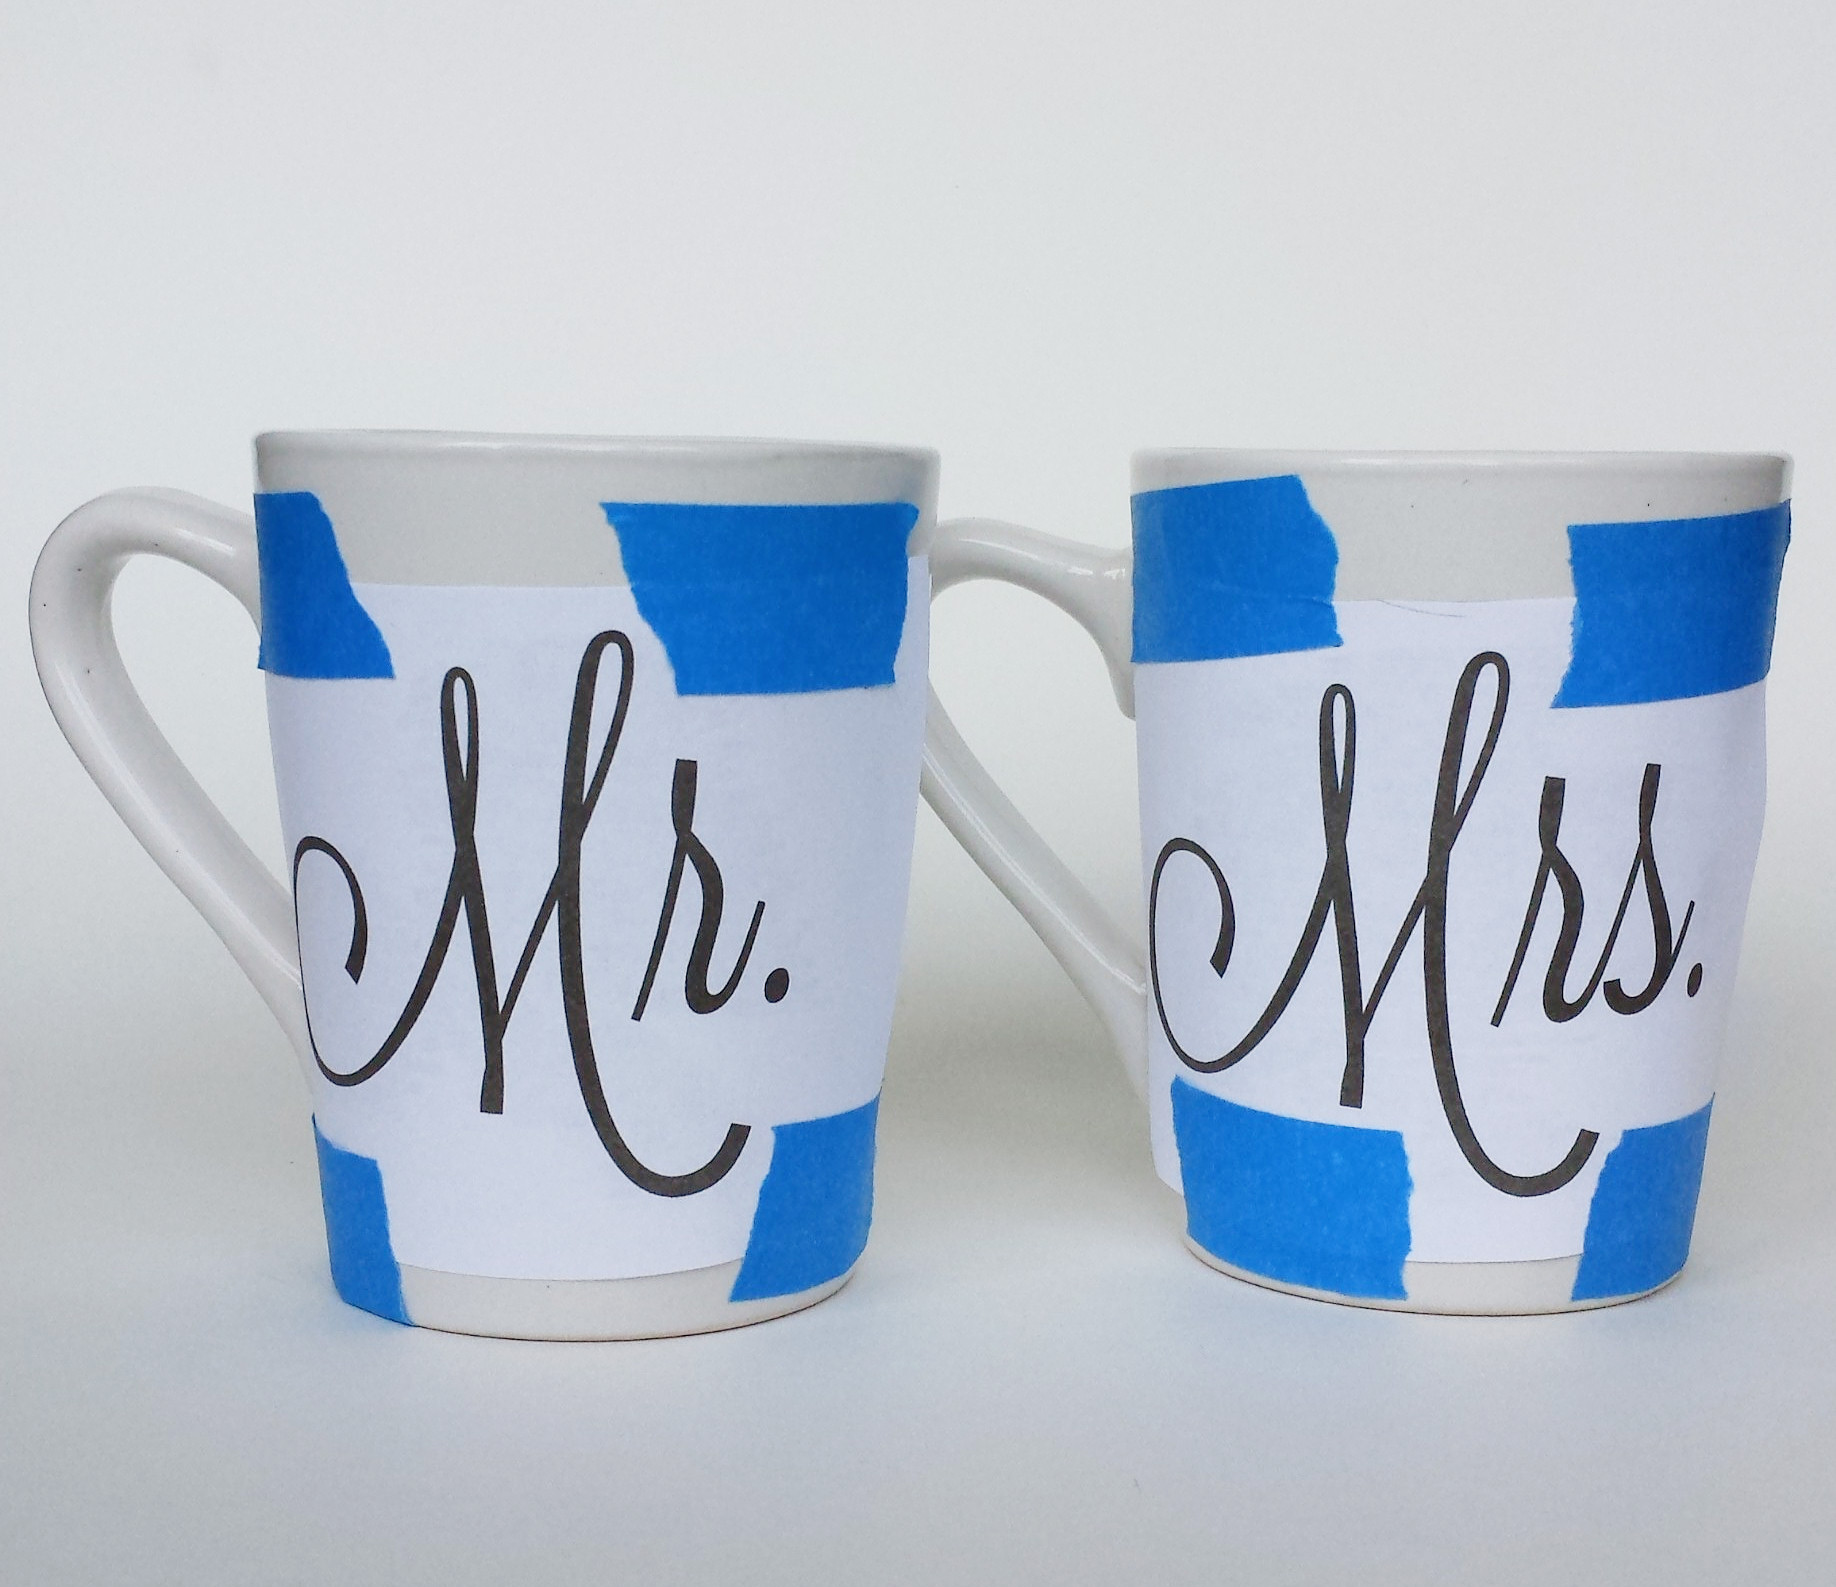 design taped on mugs - Coffee Mug Design Ideas